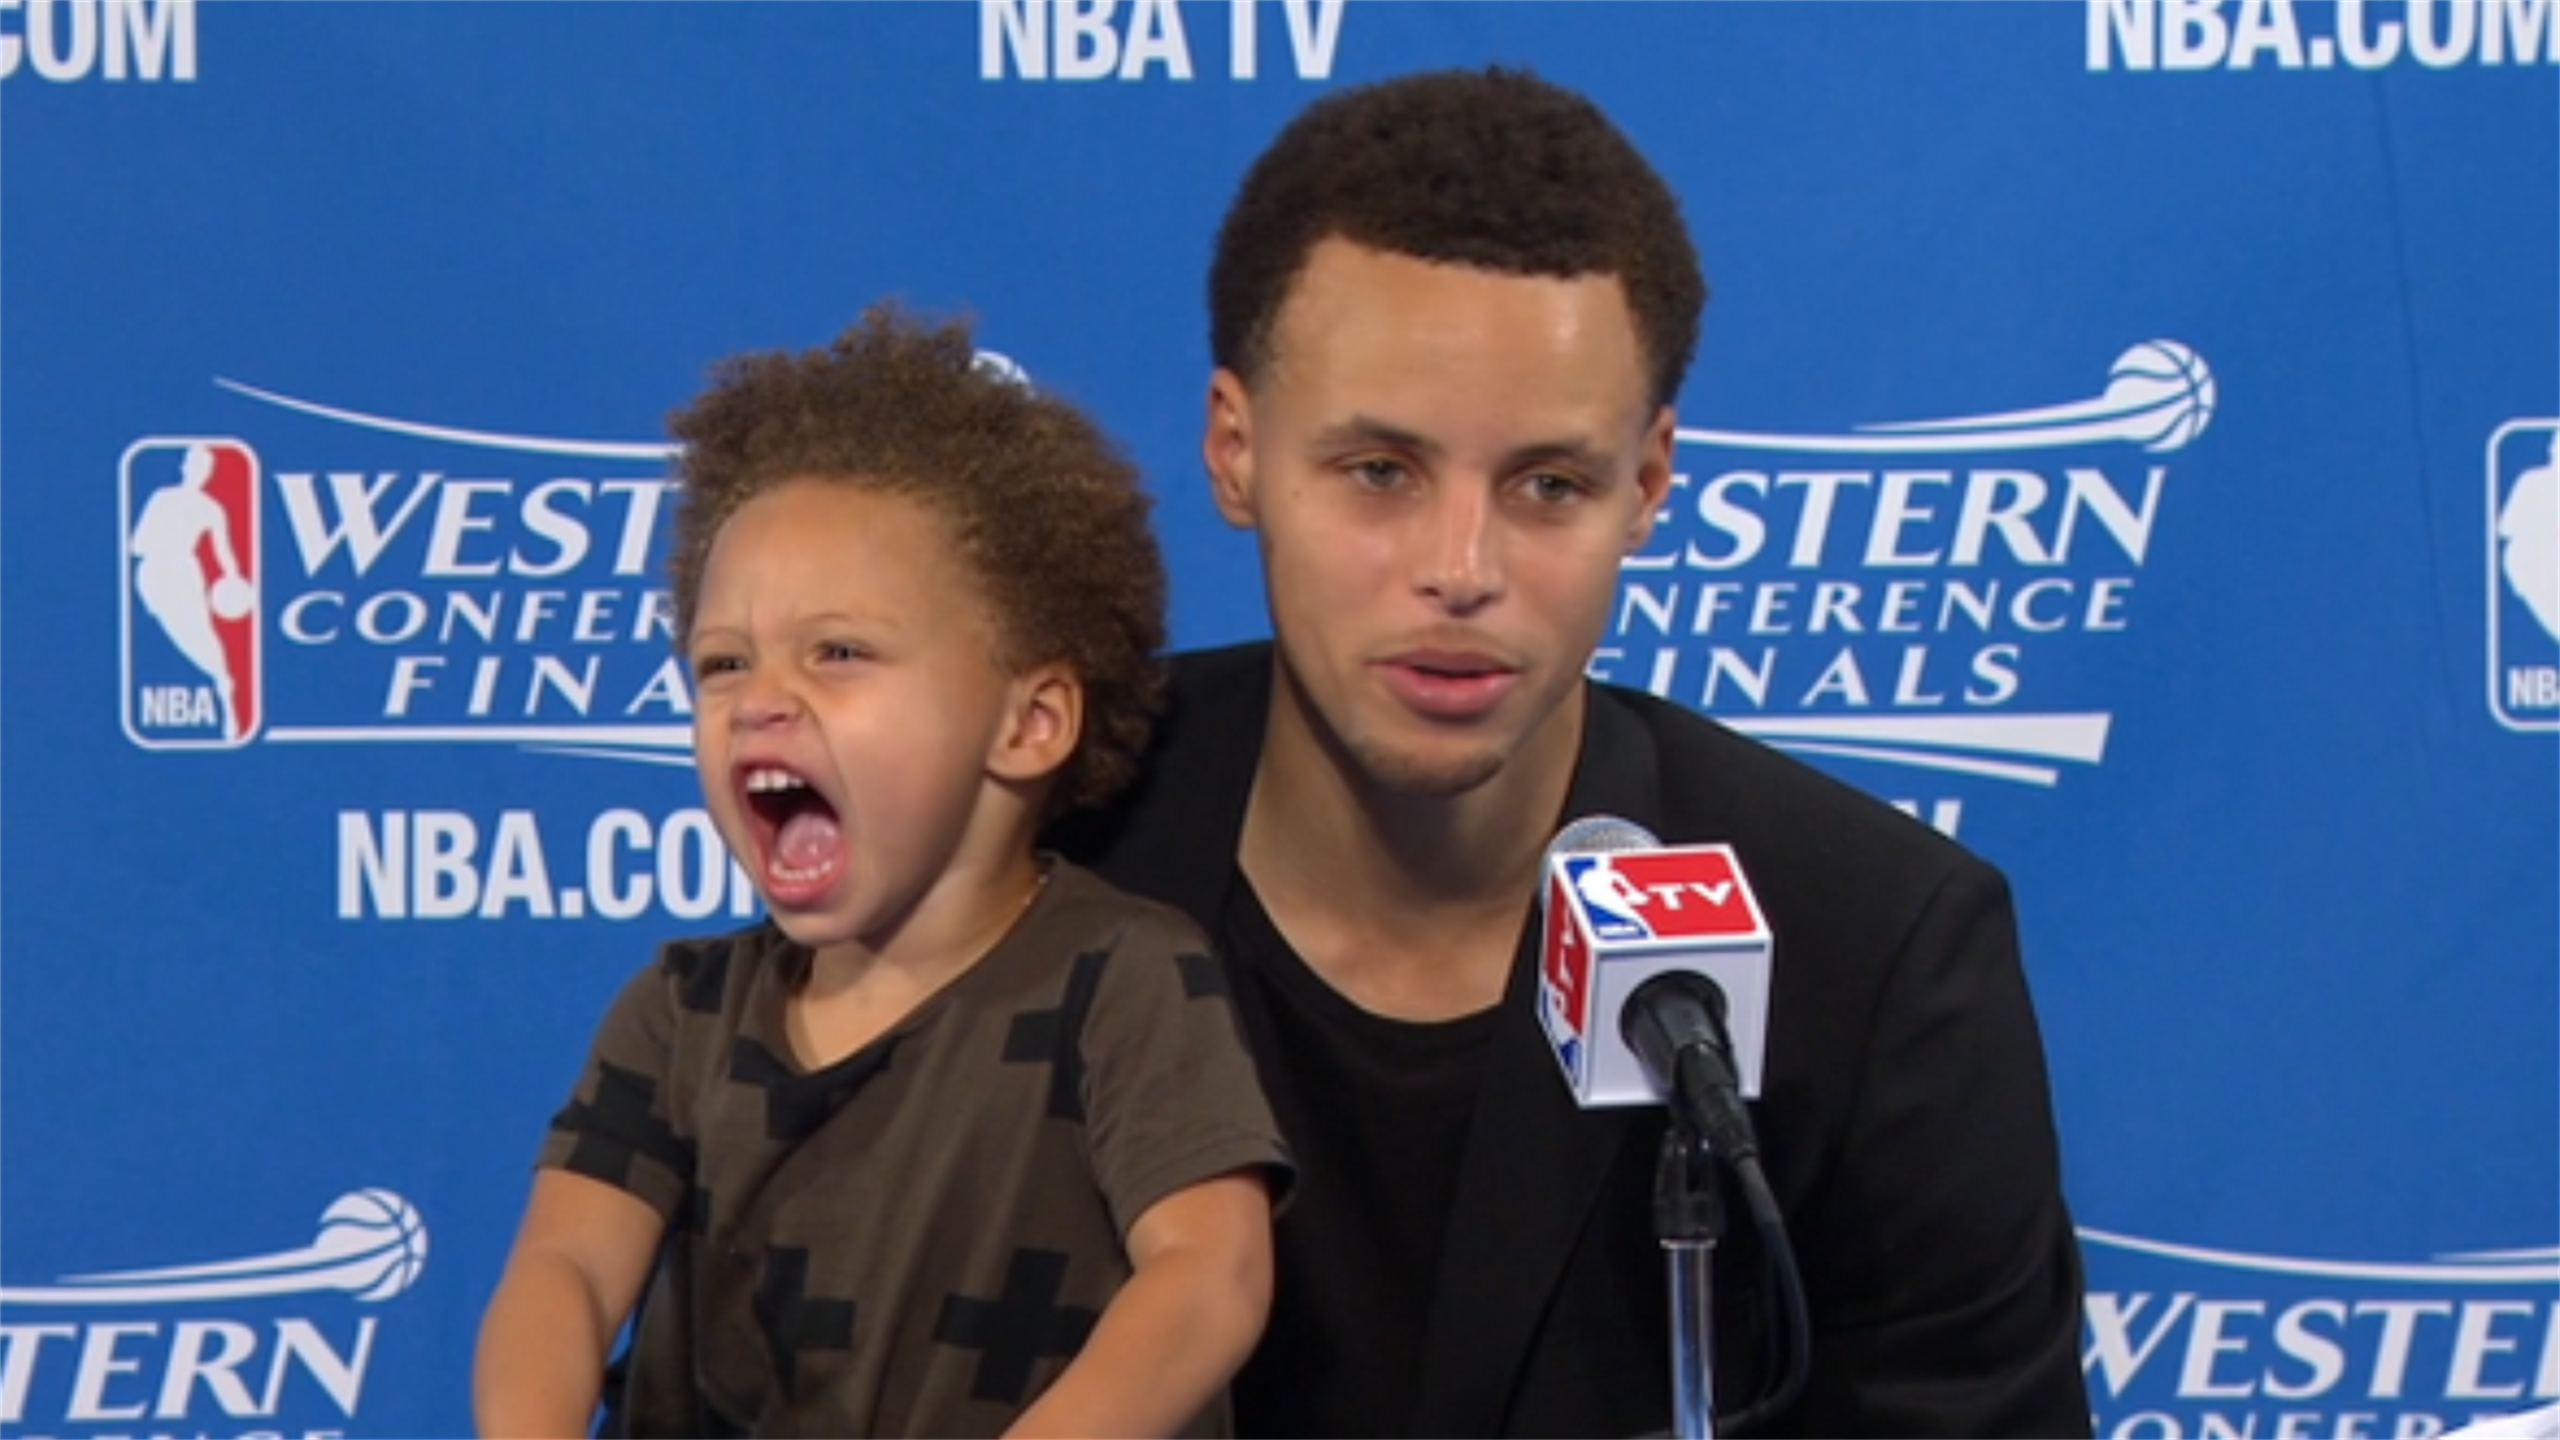 Stephen Curry and his daughter Riley